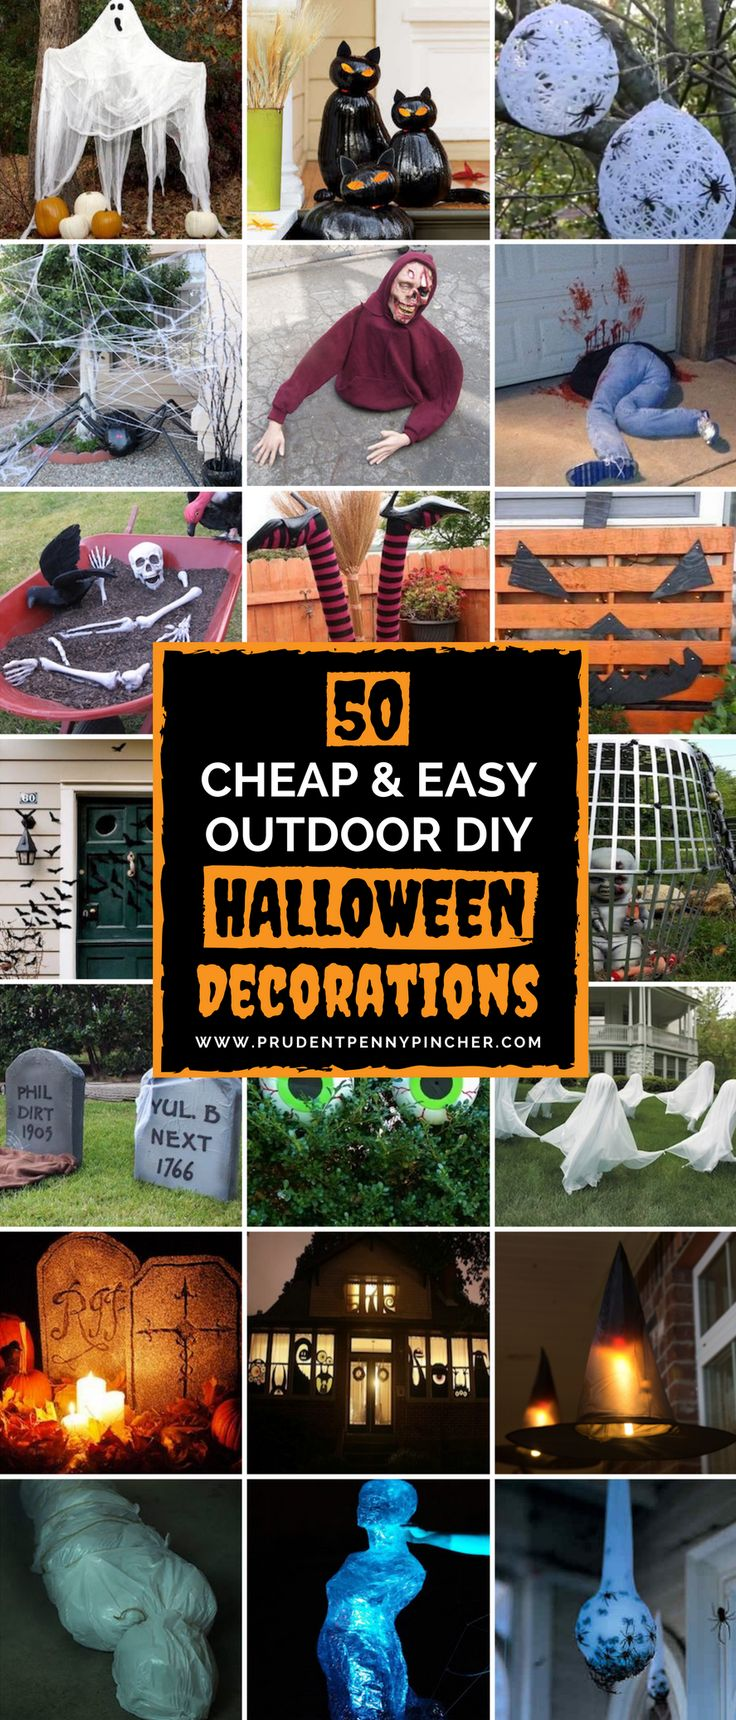 50 Cheap and Easy Outdoor Halloween Decor DIY Ideas